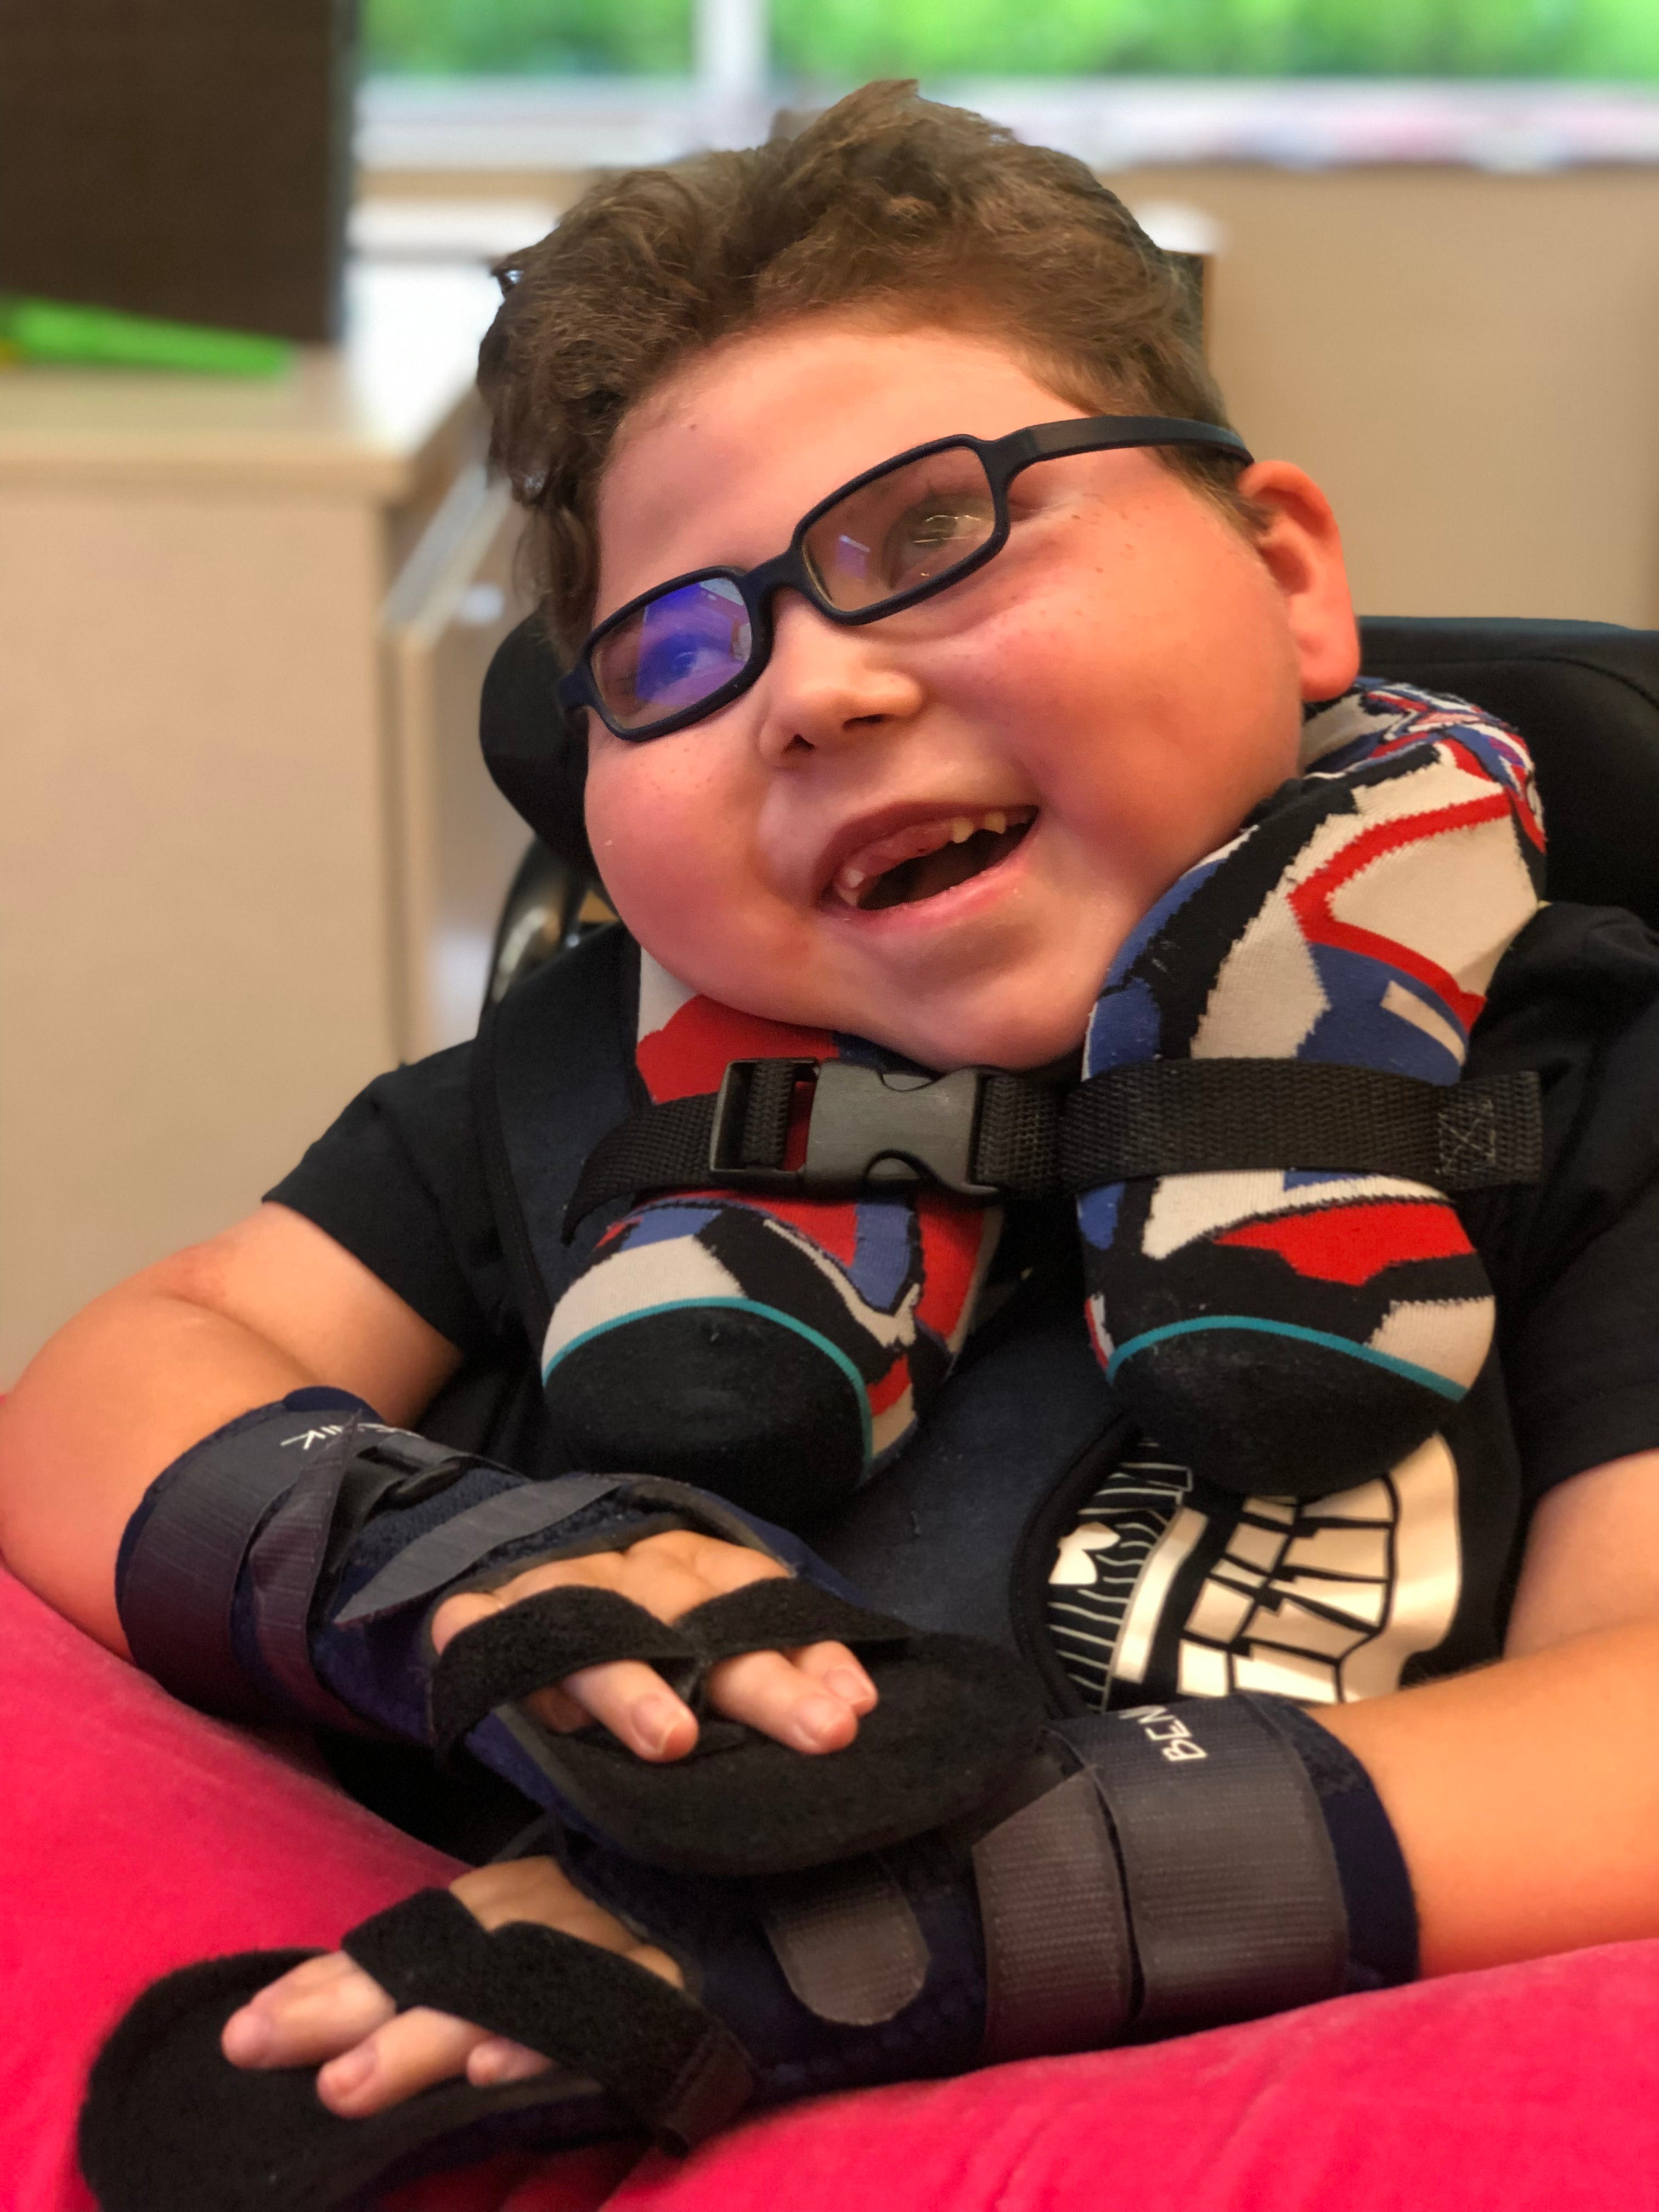 Michigan child, 7, remembered for expressing boundless love despite rare disorder